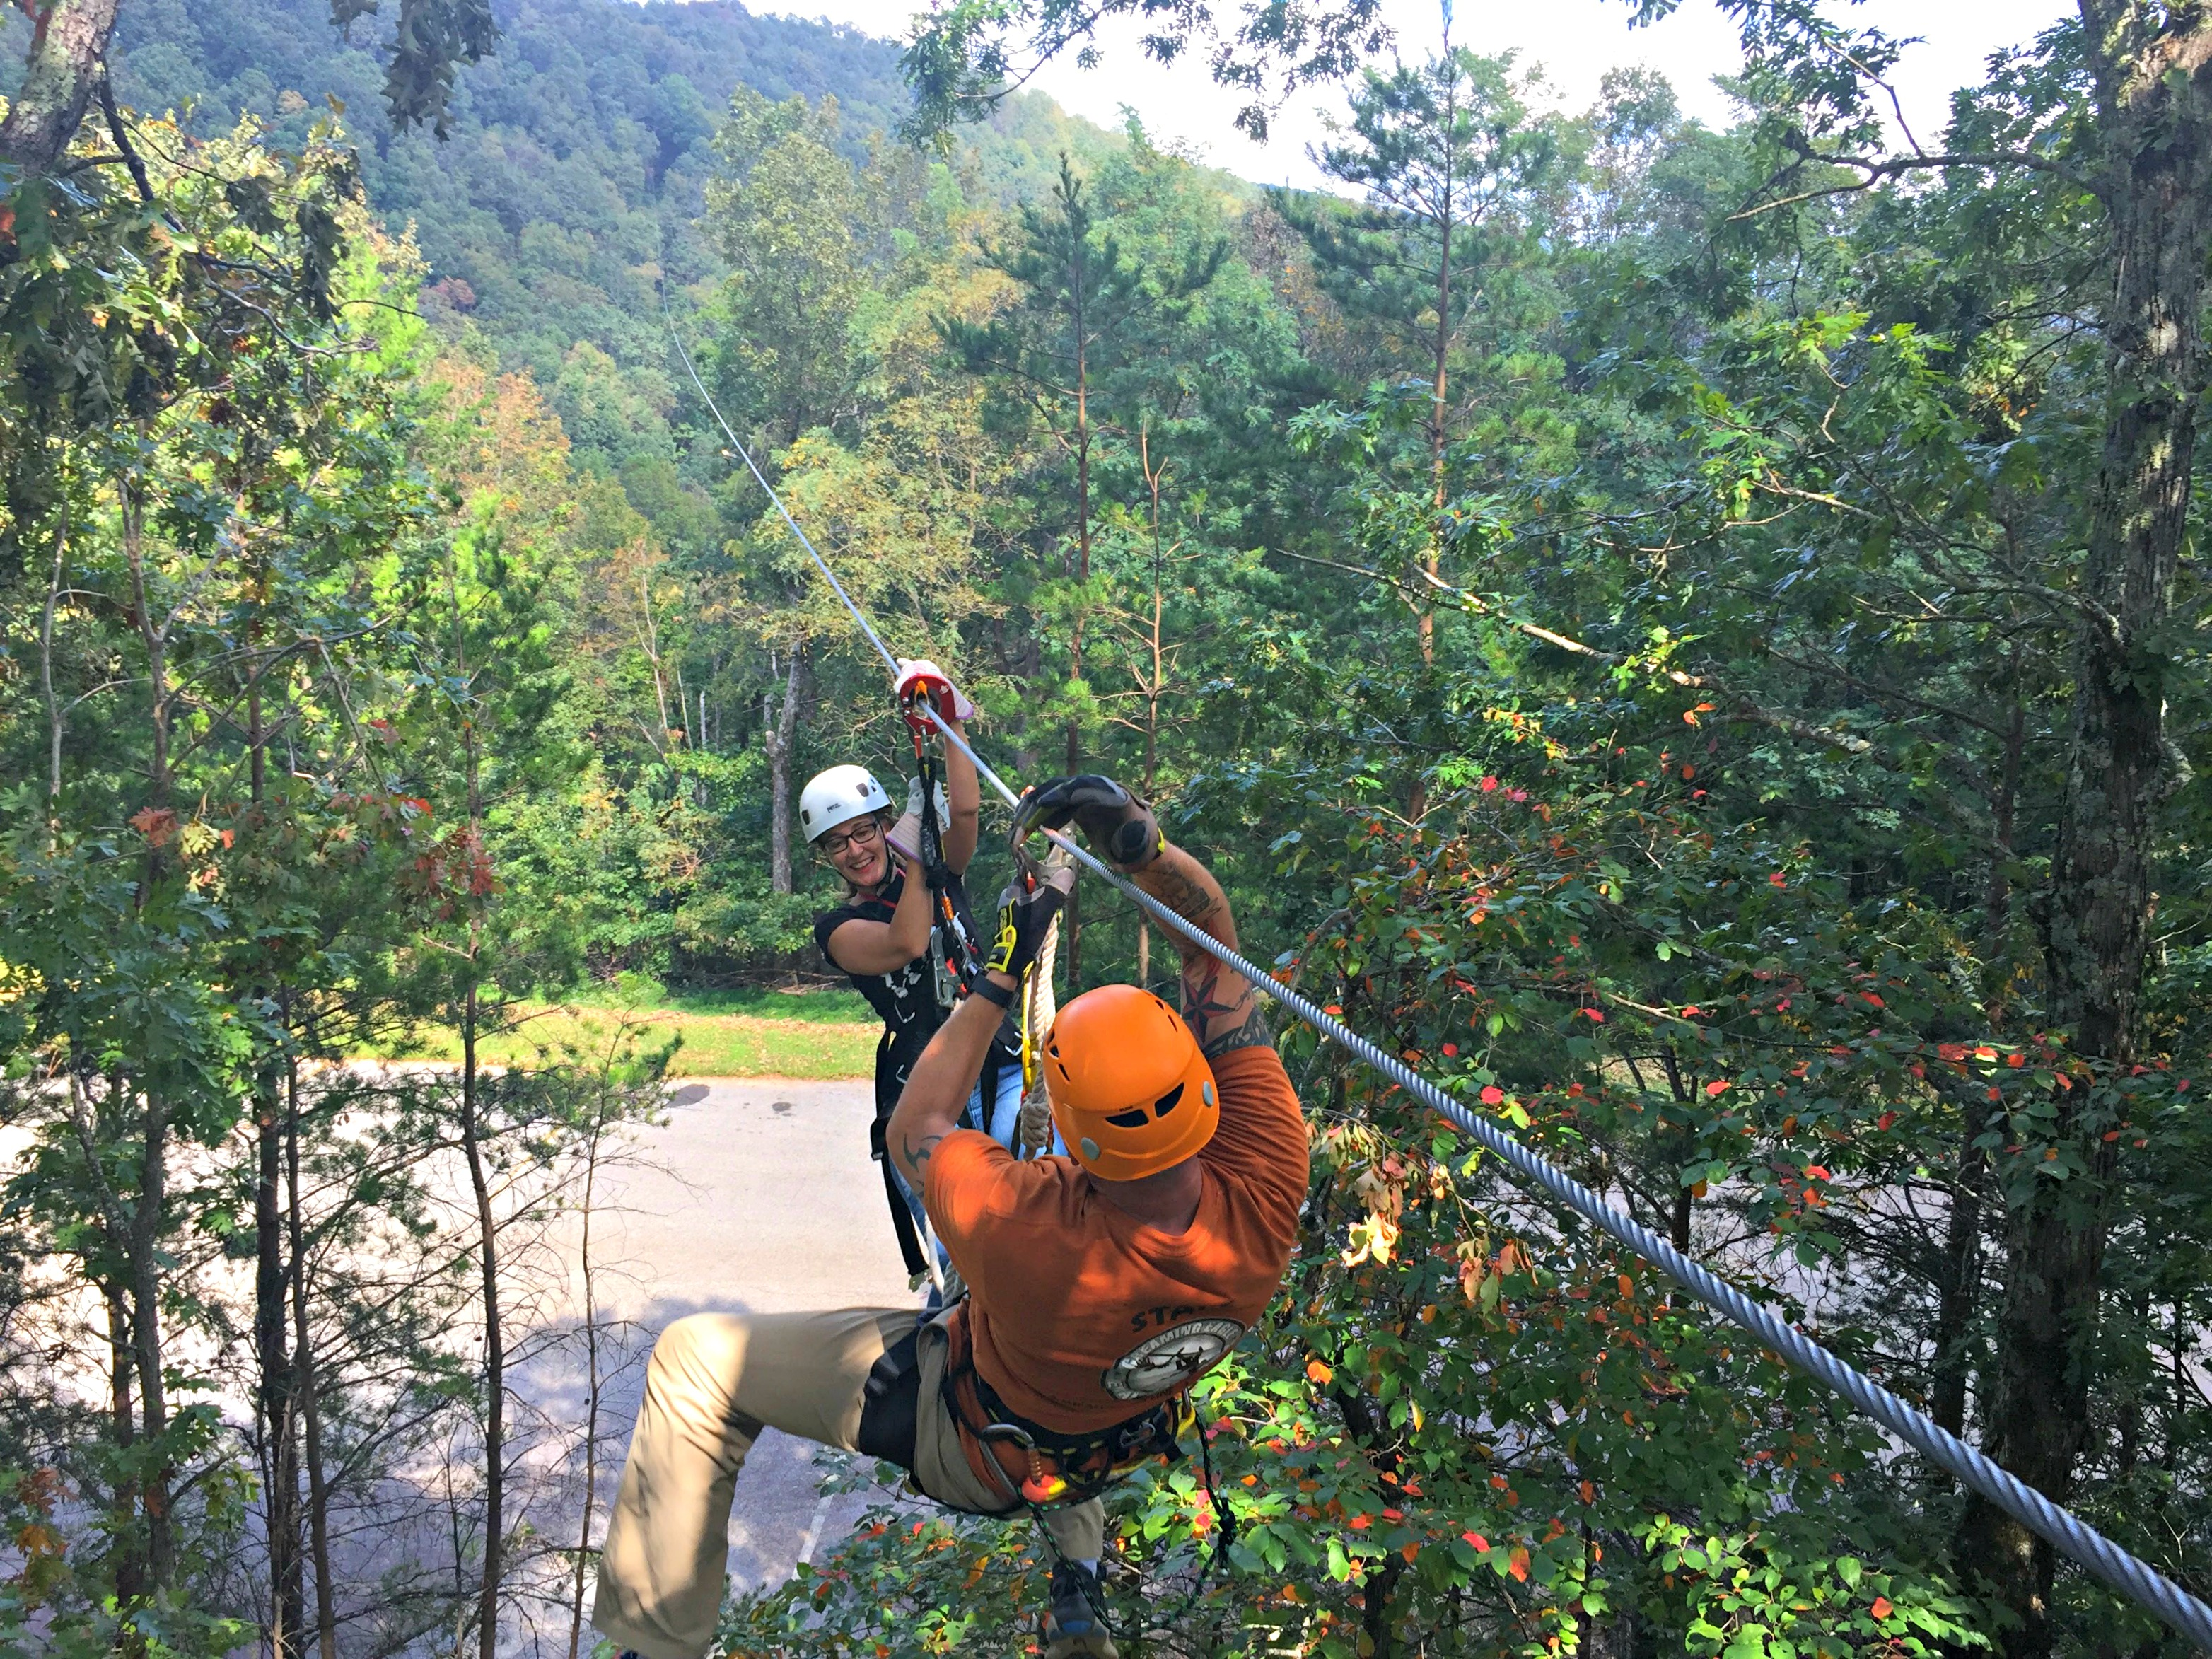 Worried about getting stuck on a zip? The guides at Amicalola Falls State Park zipline experience will get you where you need to go!